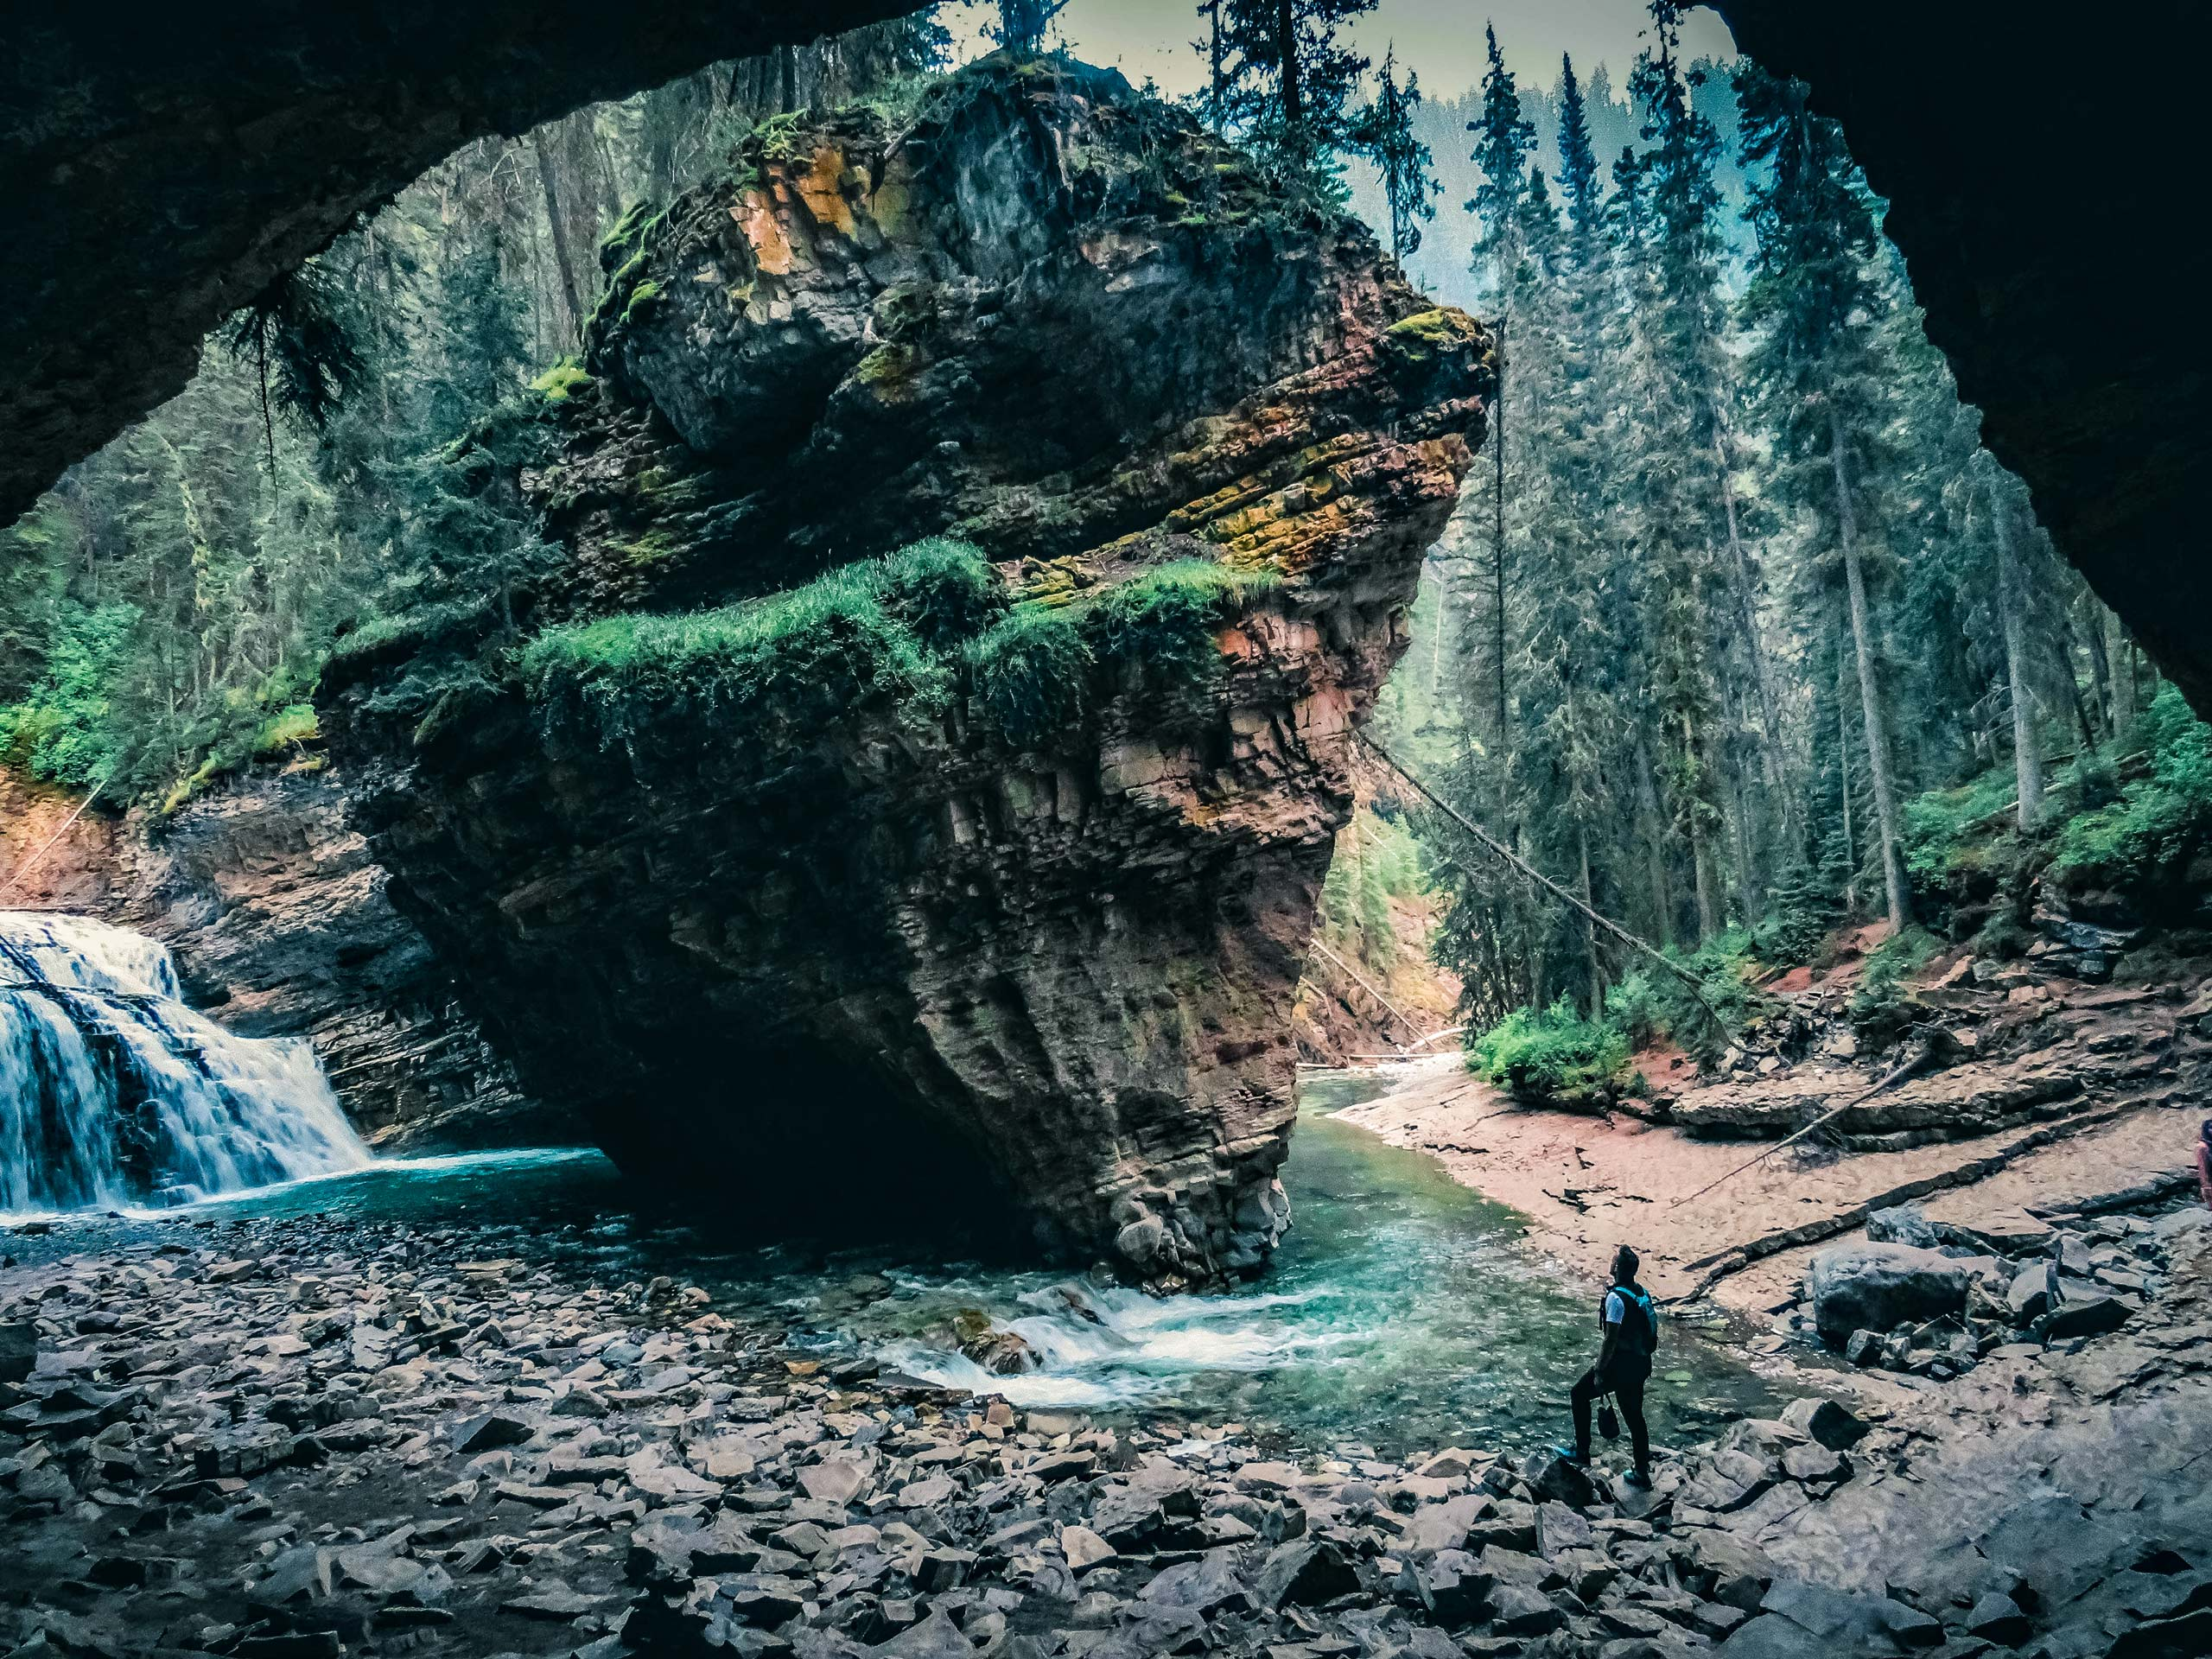 Hiking Johnston Cayon to Ink Pots waterfalls rock formations caves Banff National Park